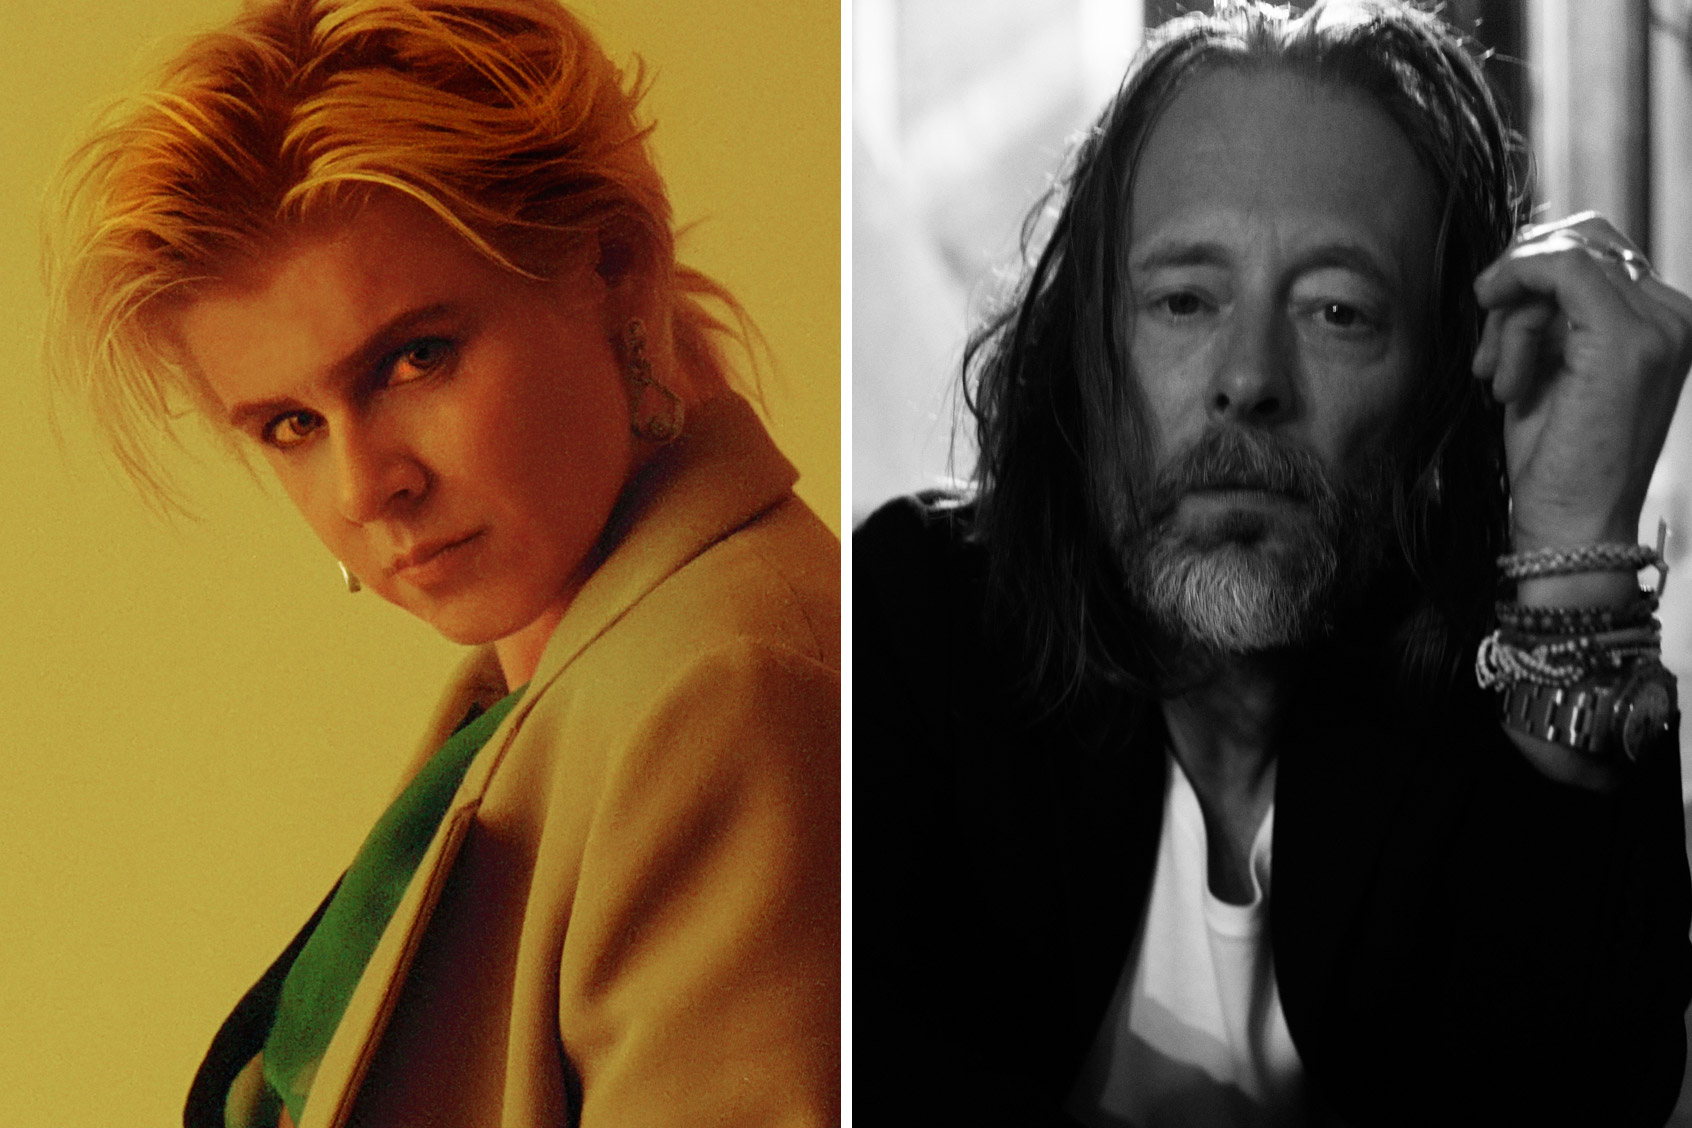 15 New Albums To Stream Now Robyn Thom Yorke Joji And More